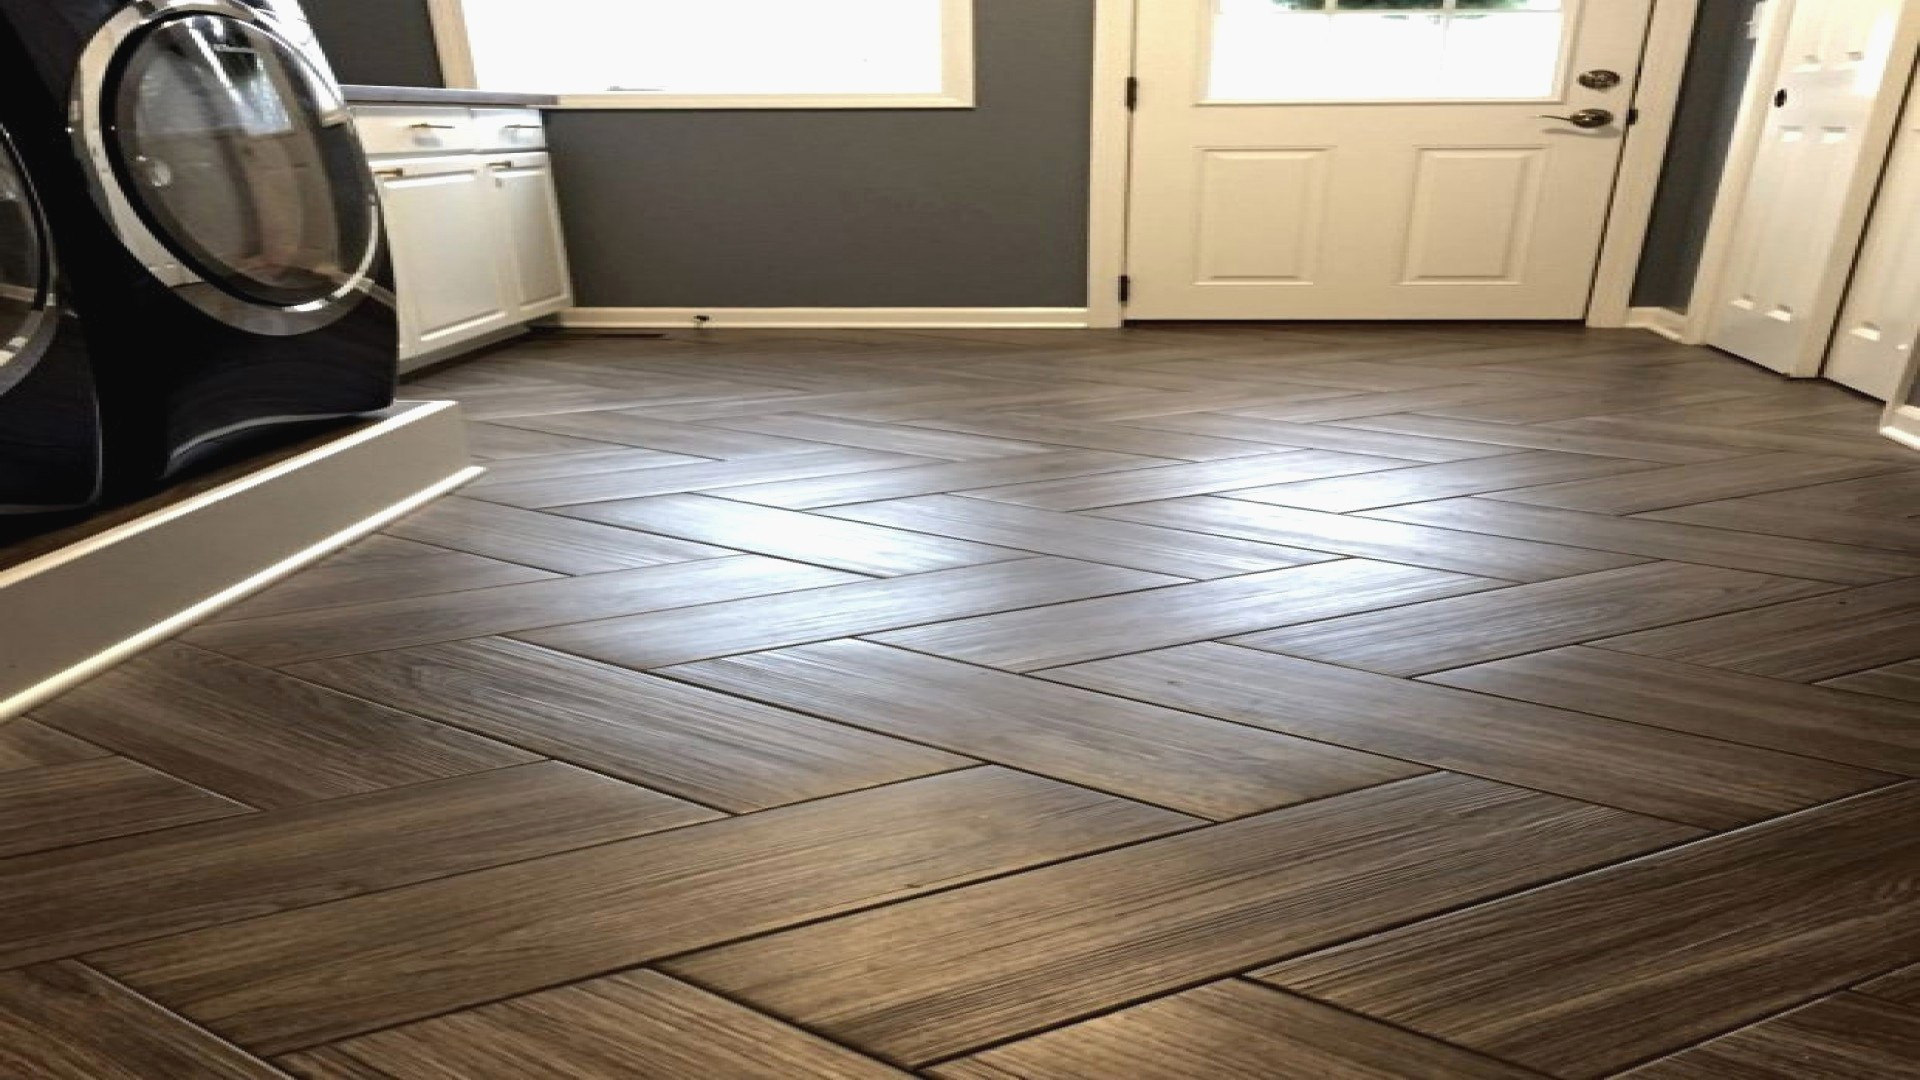 hardwood floor refinishing calgary of dahuacctvth com page 52 of 75 flooring decoration ideas page 52 pertaining to hardwood flooring home depot